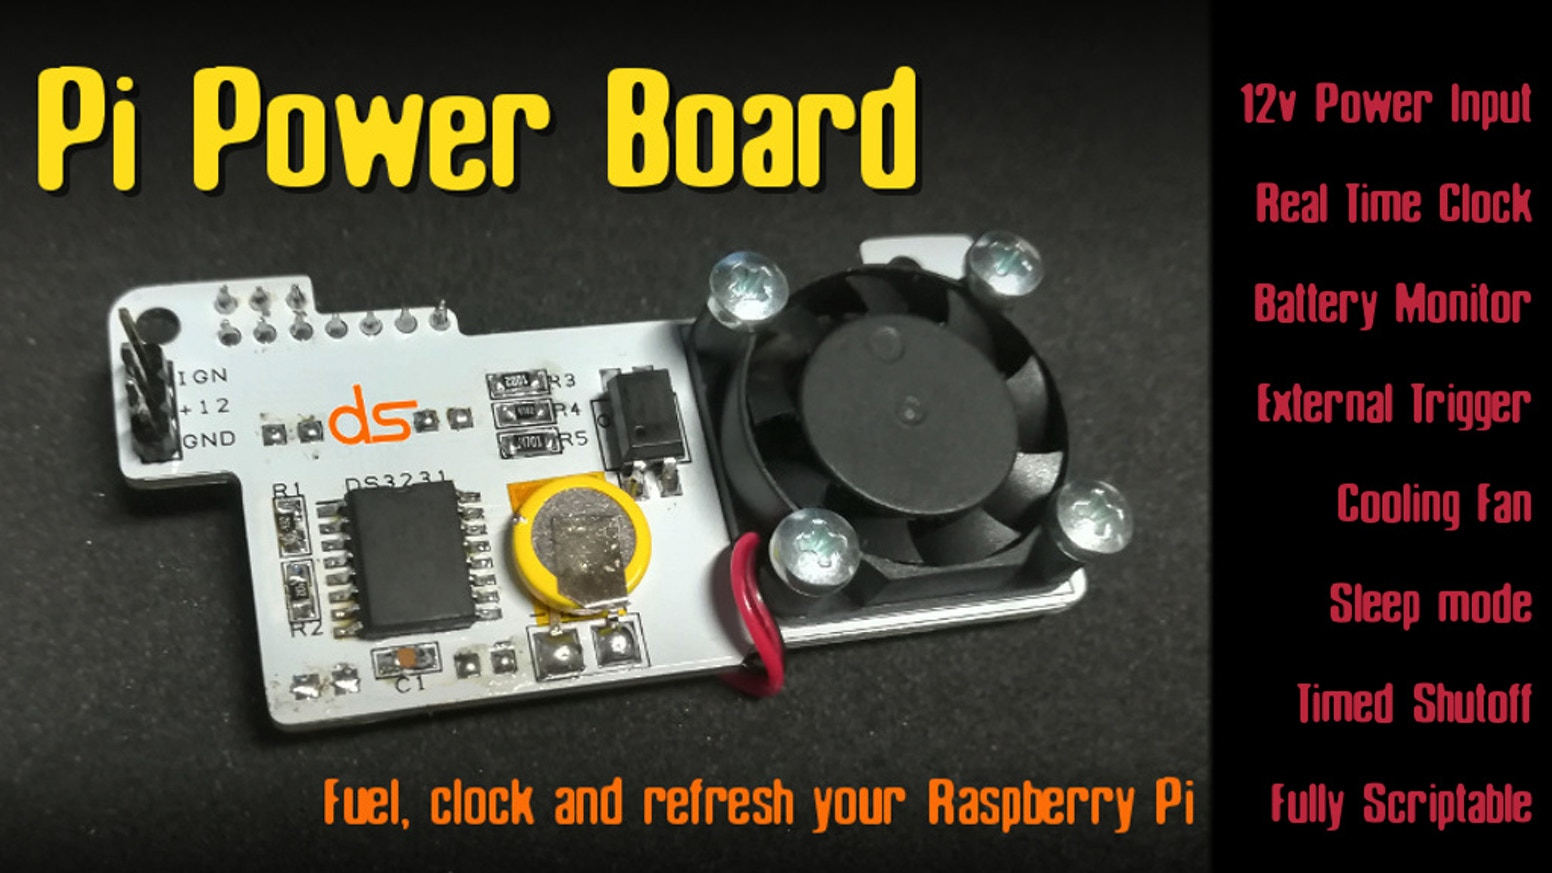 Not another simple power board... this is an all in one solution for your Pi with RTC, Fan, battery voltage monitor and remote trigger!